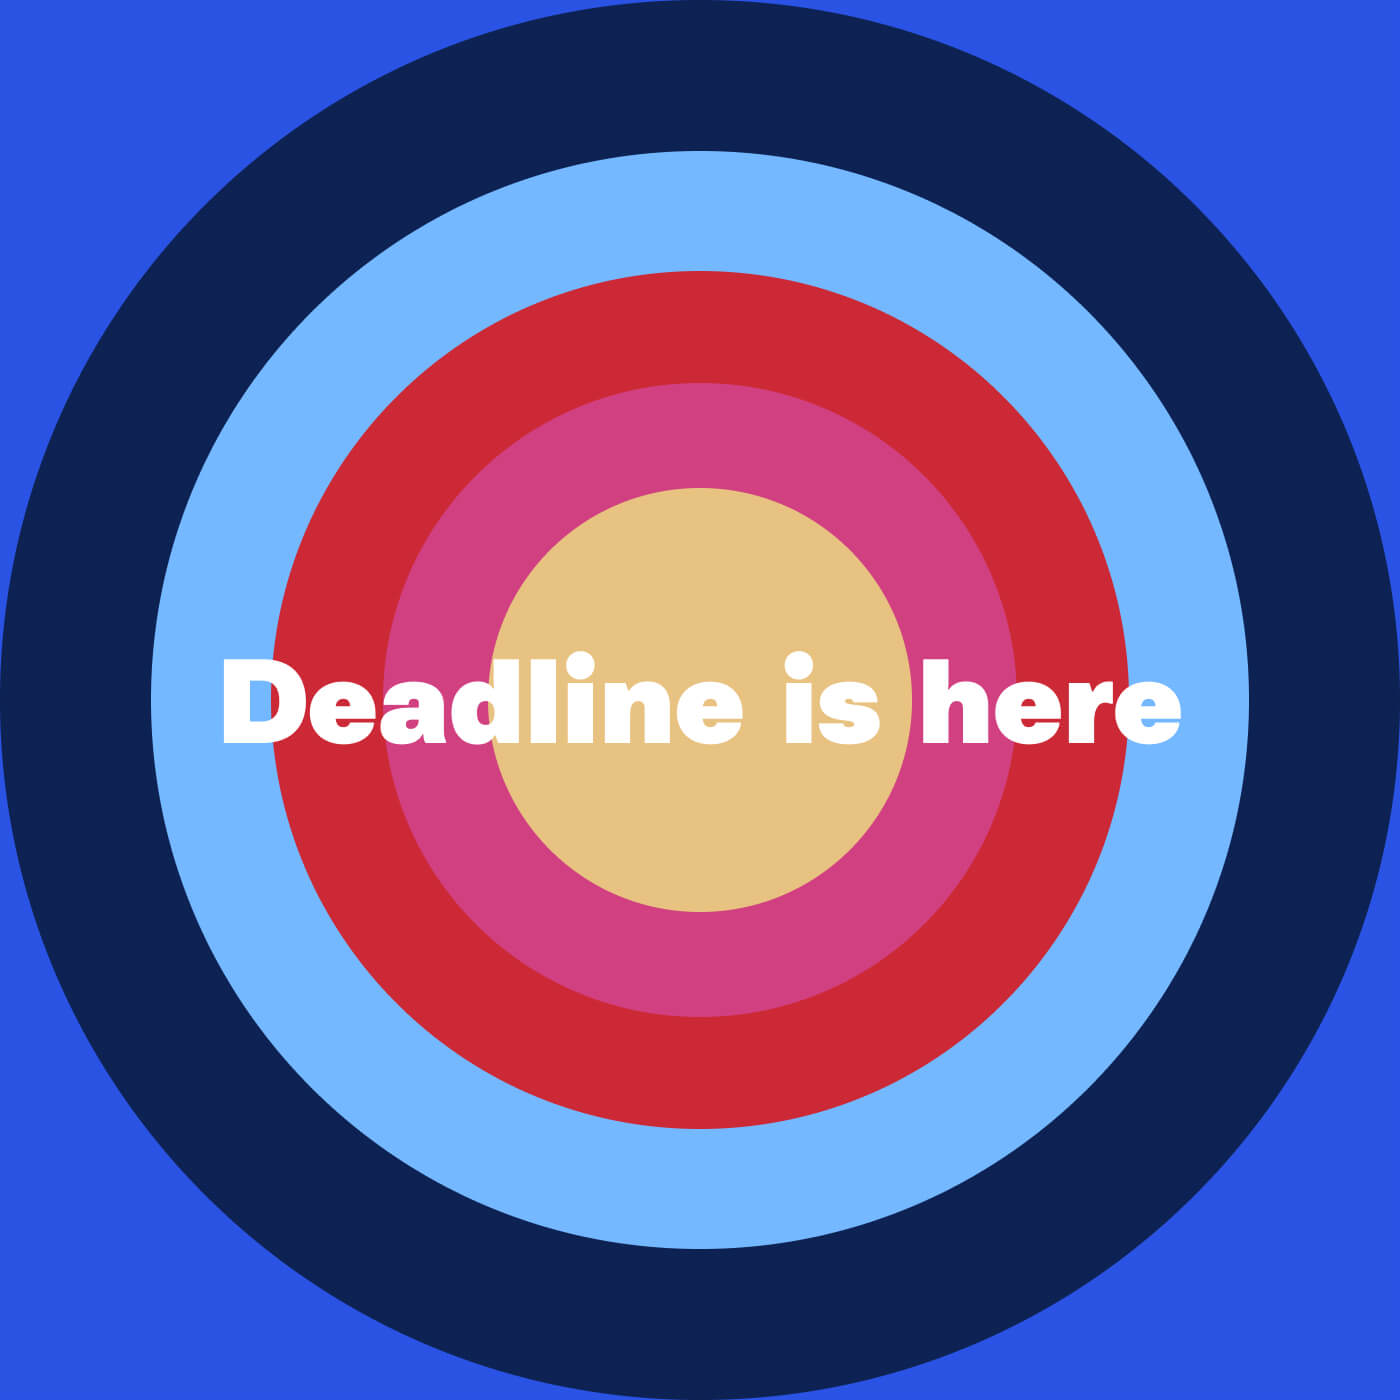 Playlist cover - Deadline is here